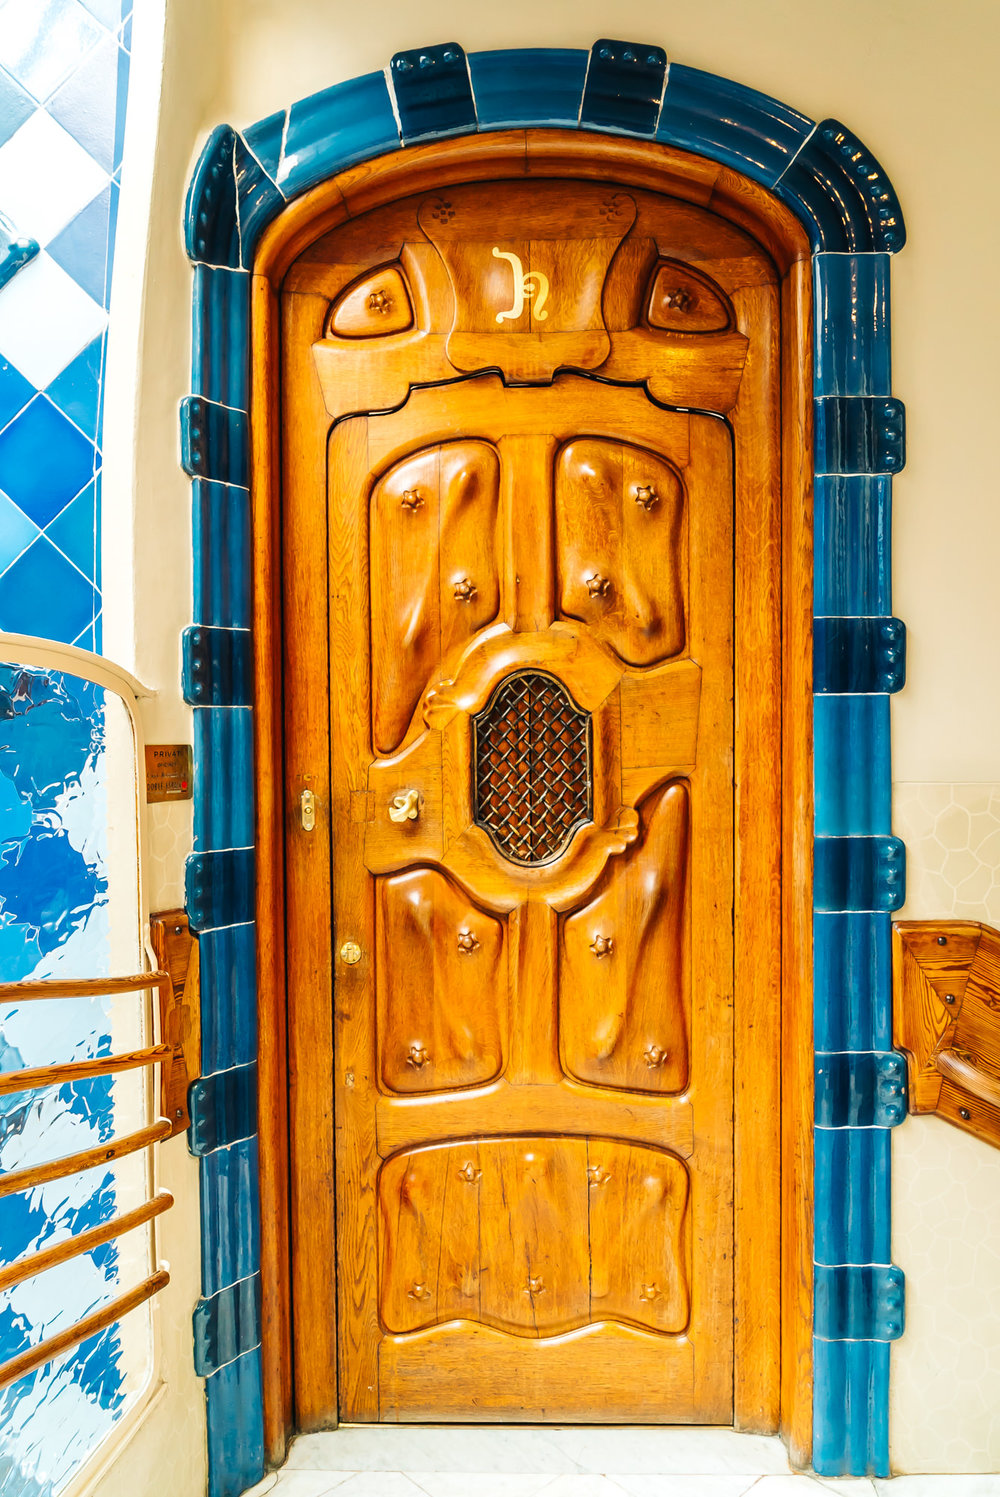 Antoni Gaudi's unique oak doors